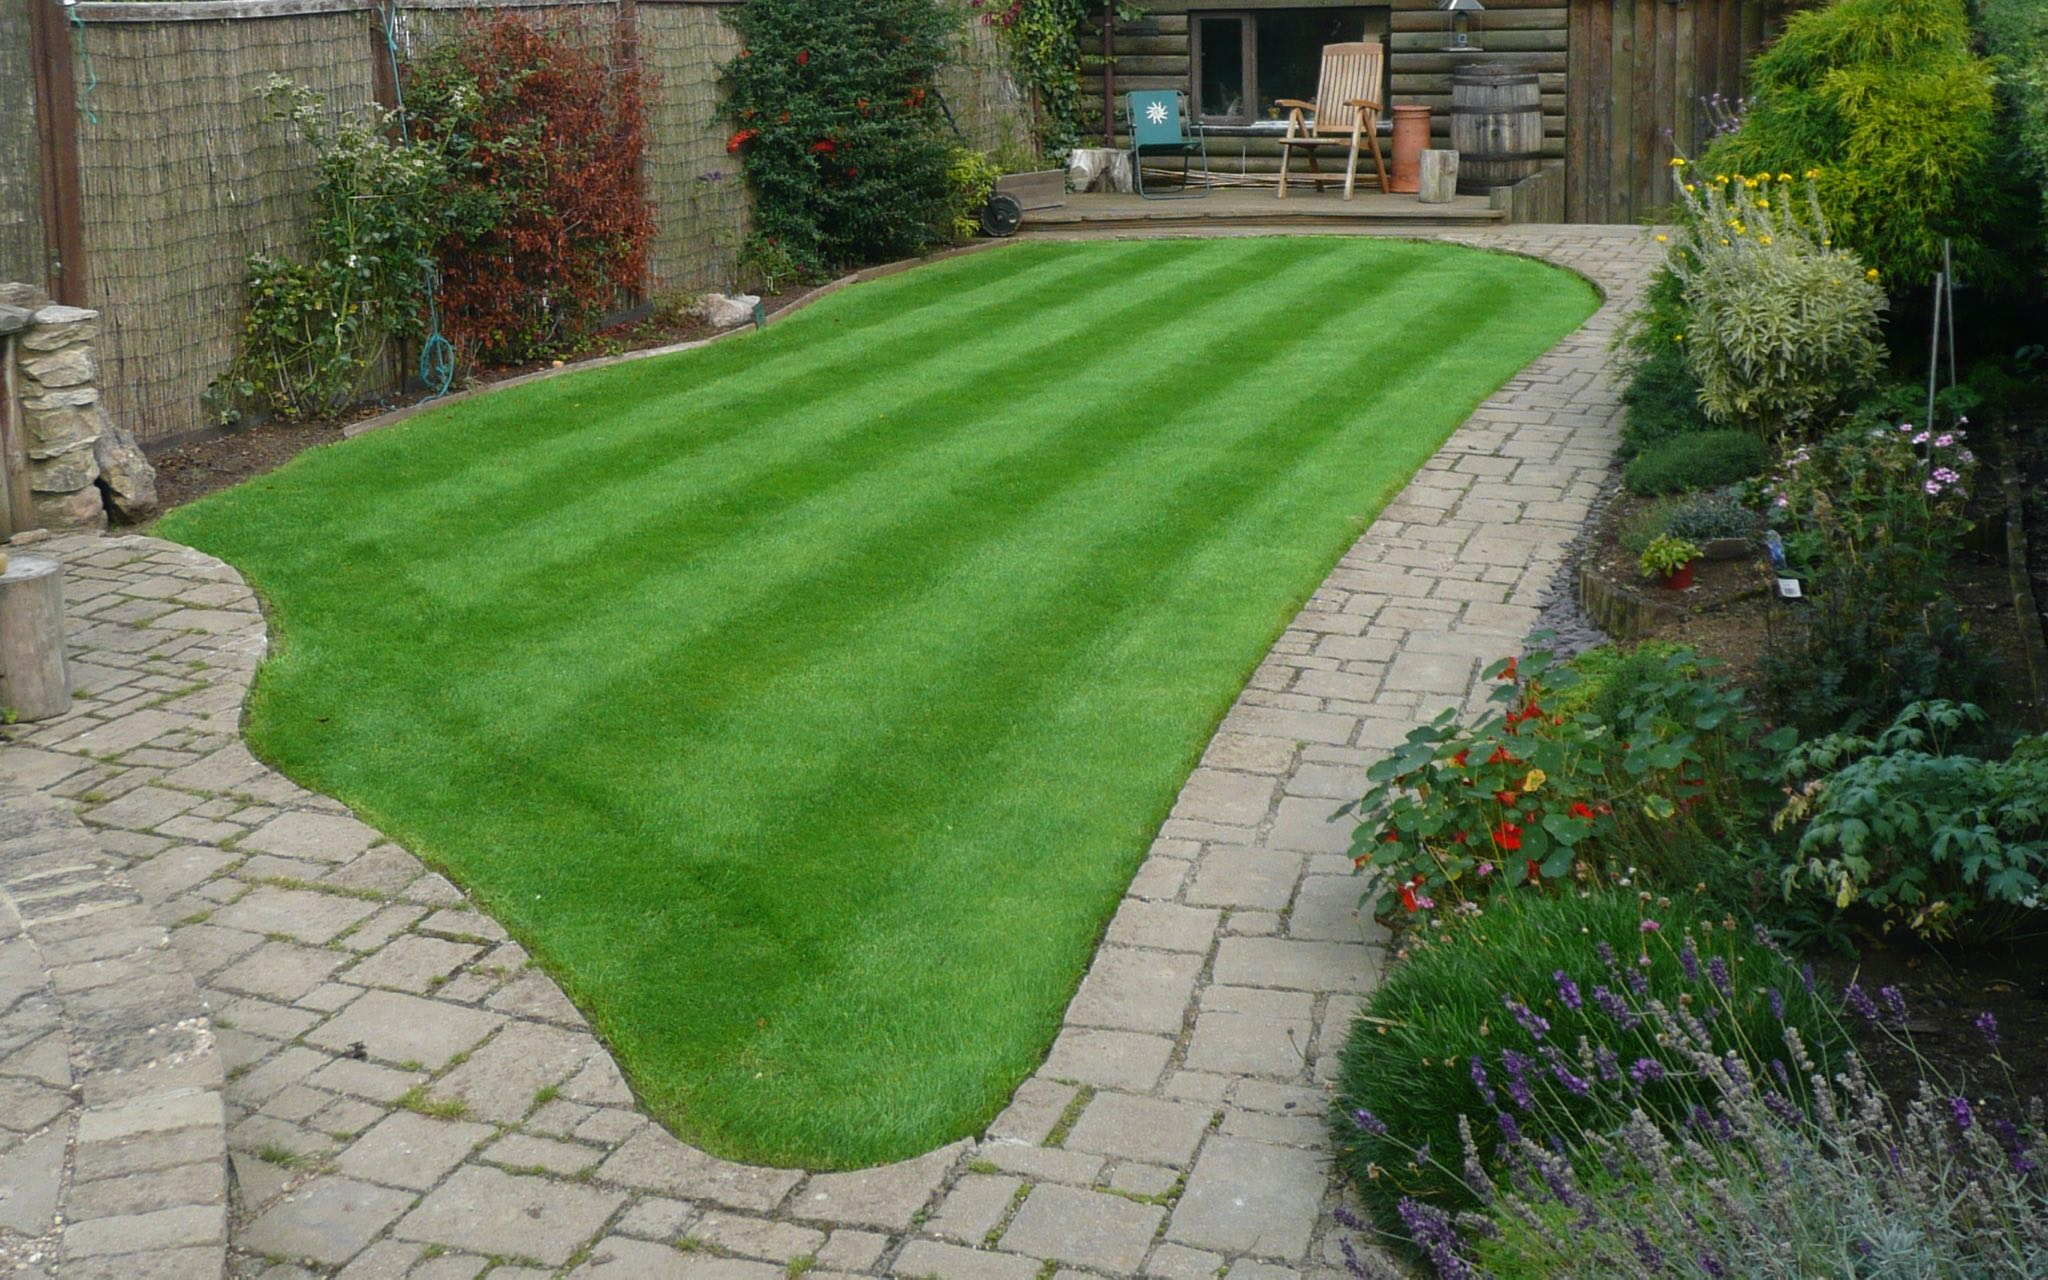 Small bright green lawn with vibrant stripes created using quality organic fertilisers